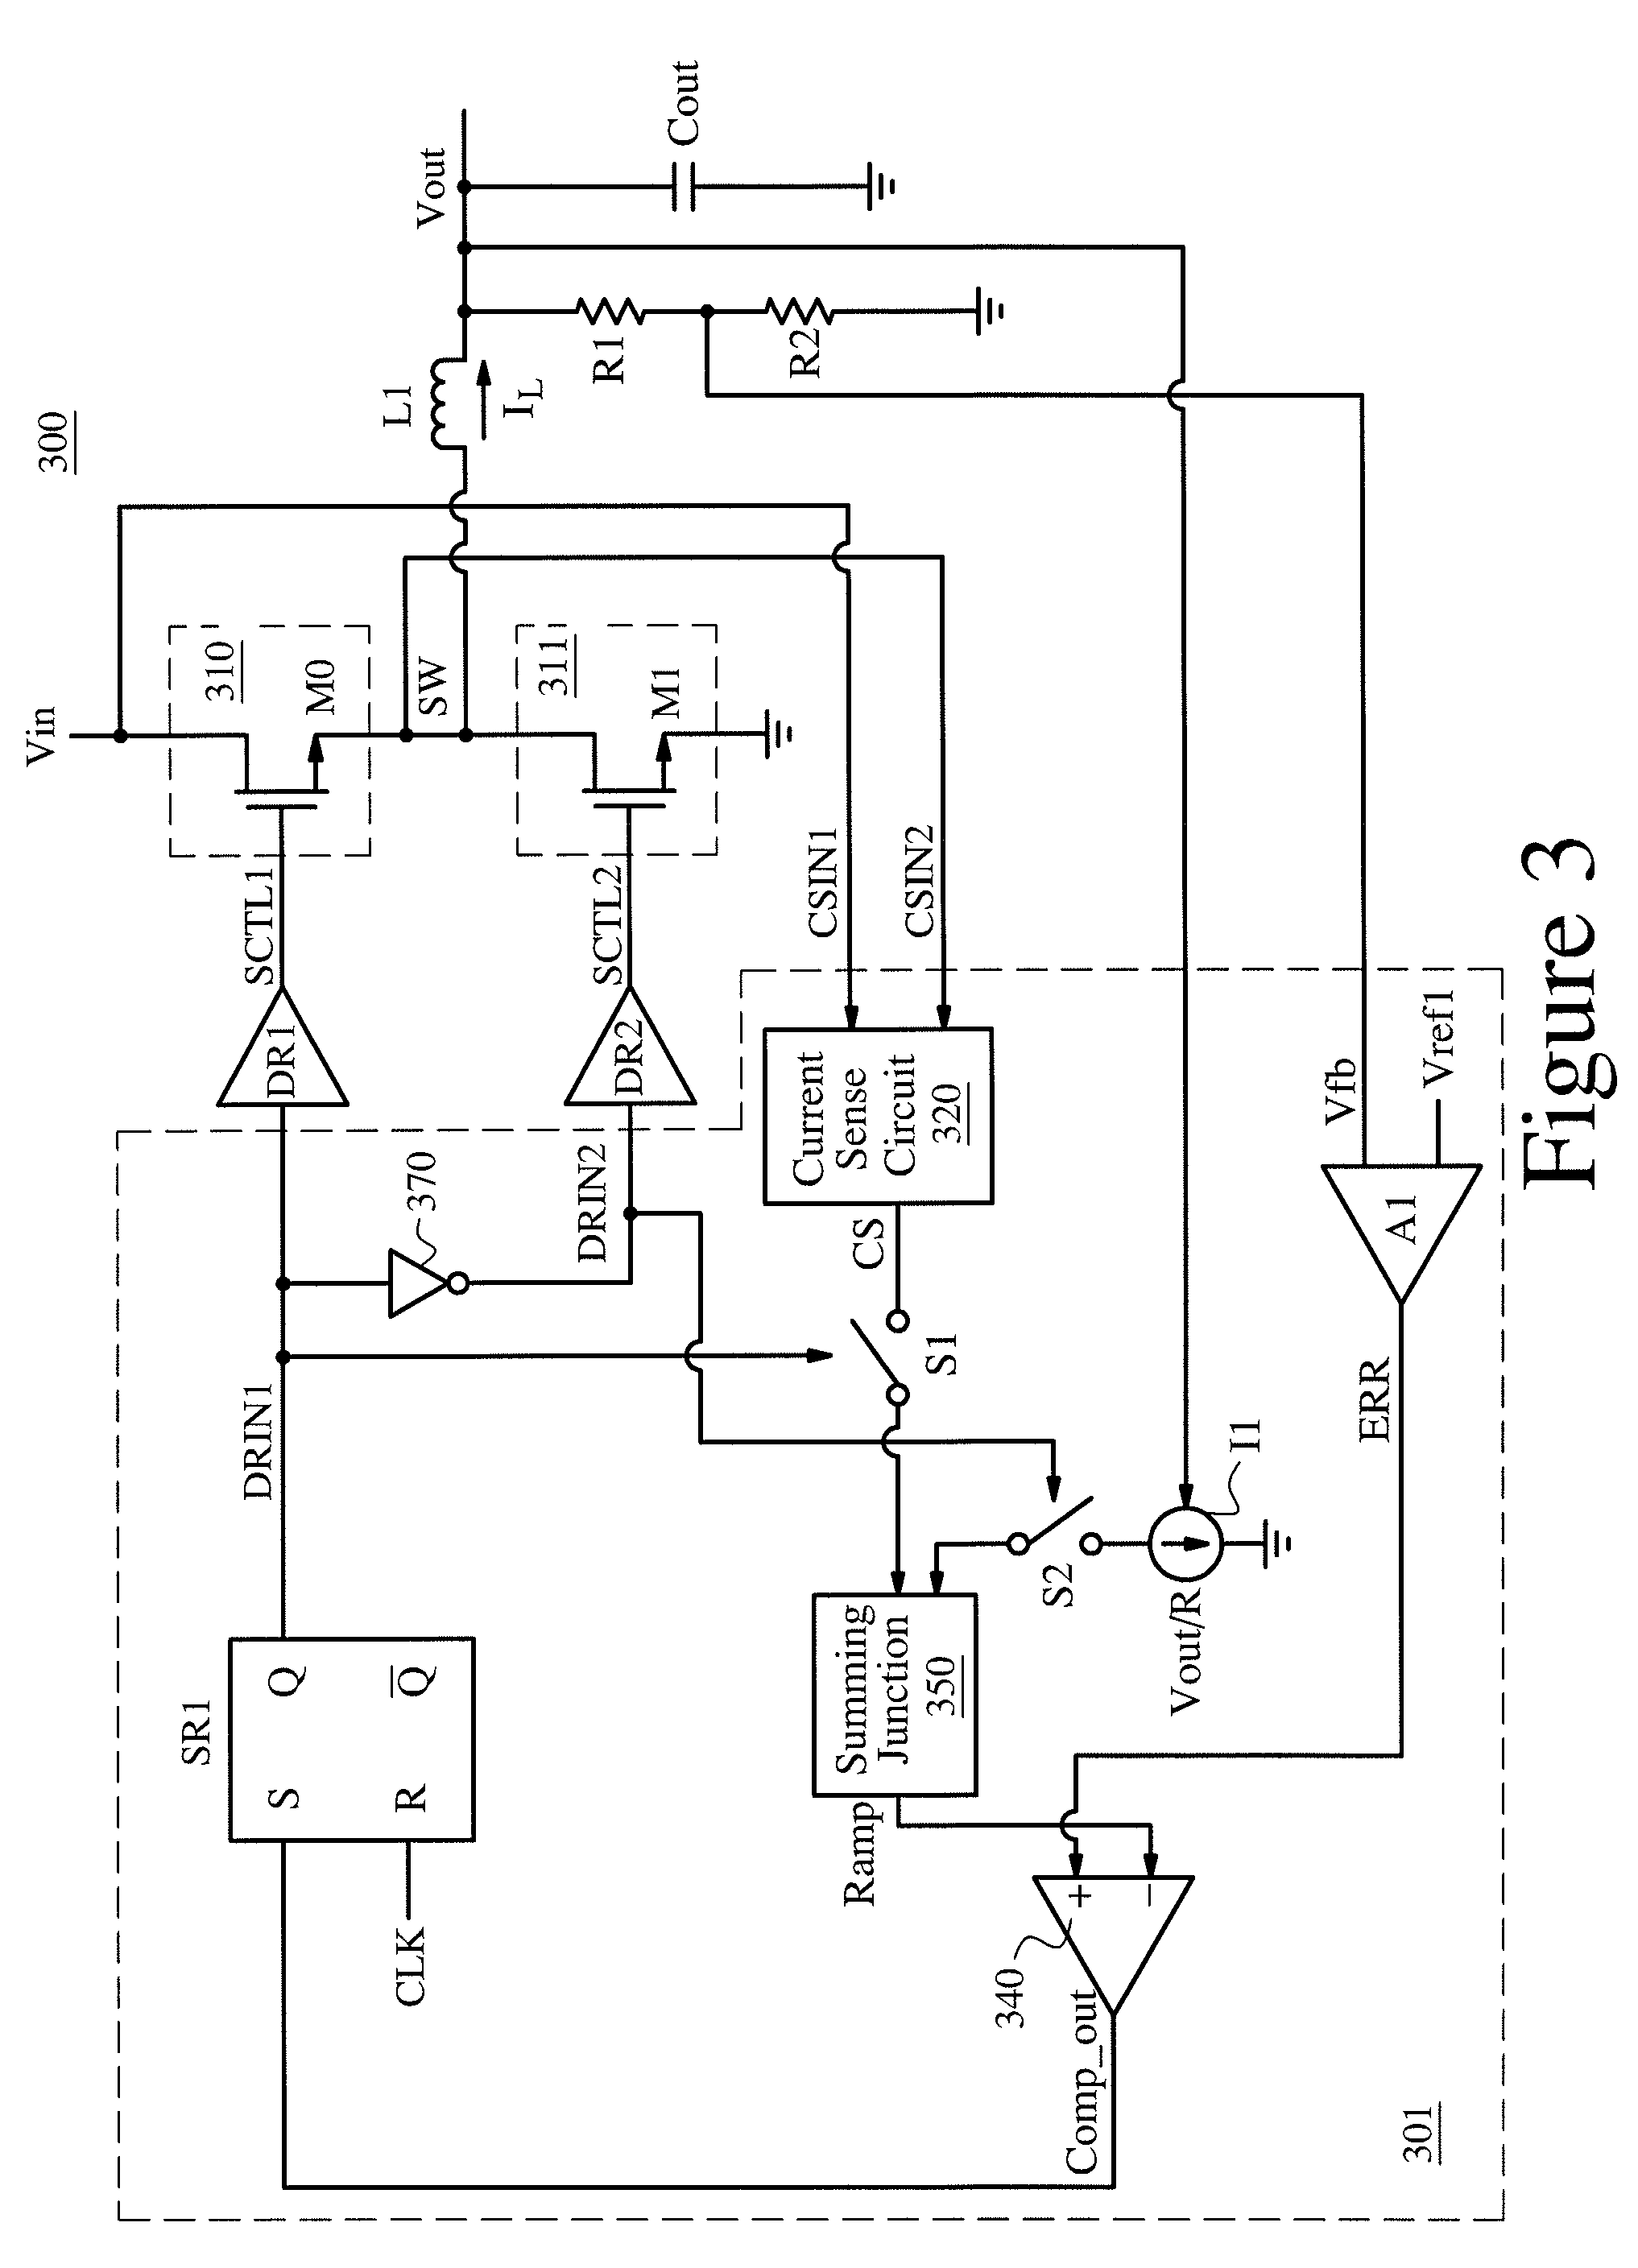 patent us7936160 apparatus and method for valley emulated currentPatent Buckboost Converter With Sample And Hold Circuit In Current #3